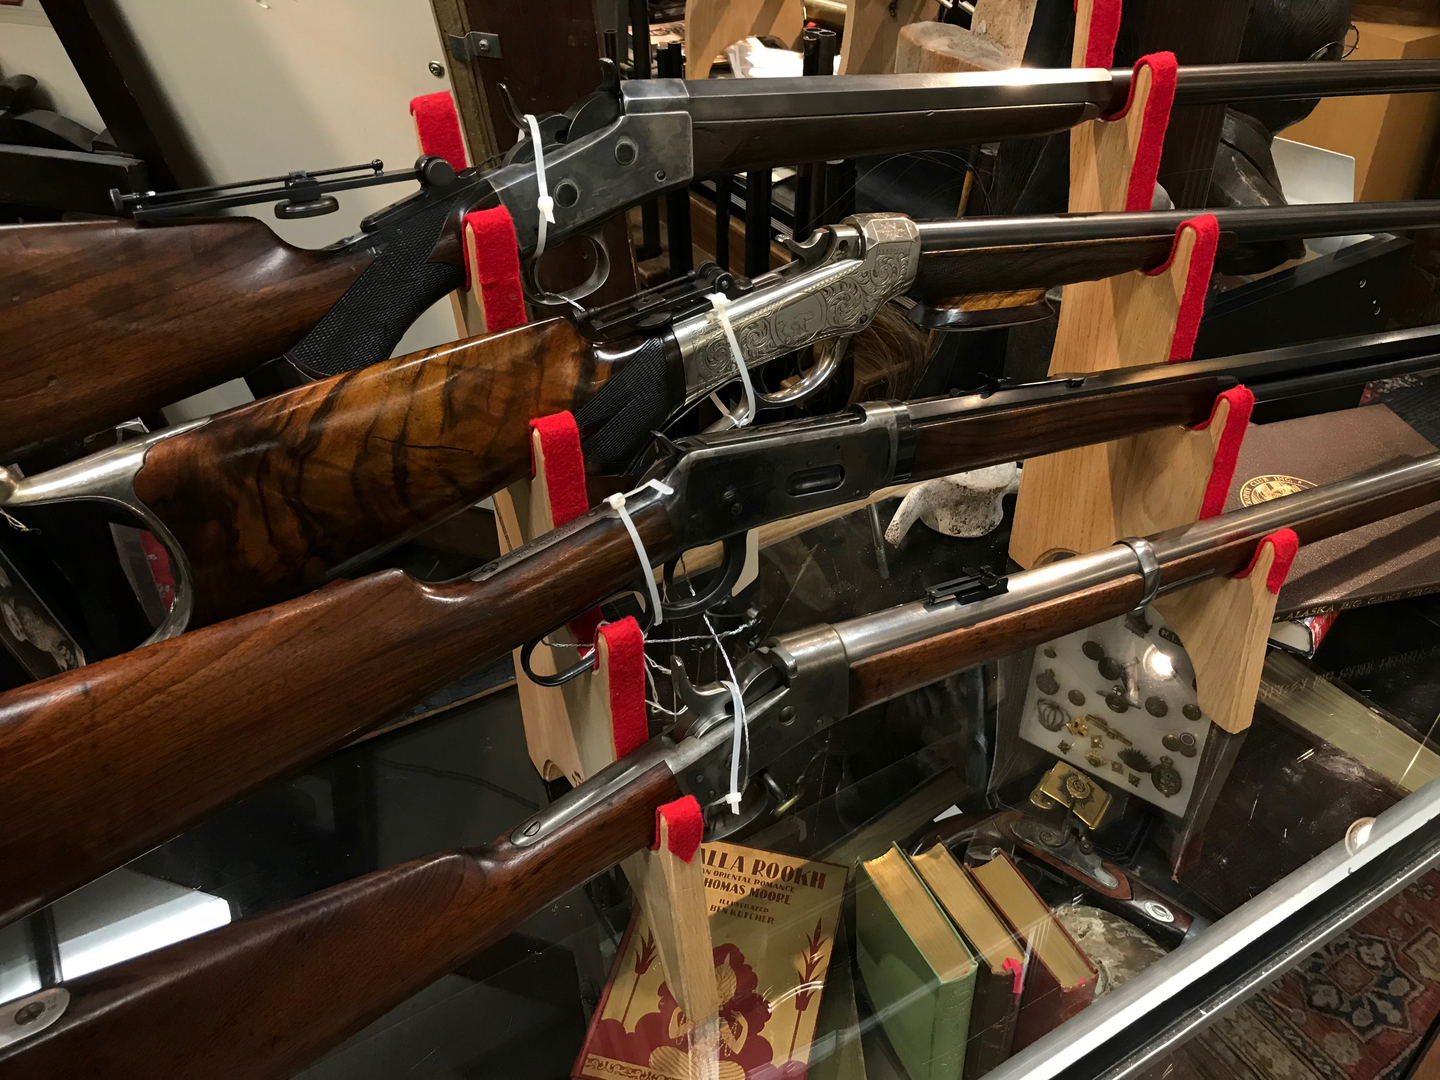 The Antique Gallery - Antiques, Firearms, Firearms For Sale